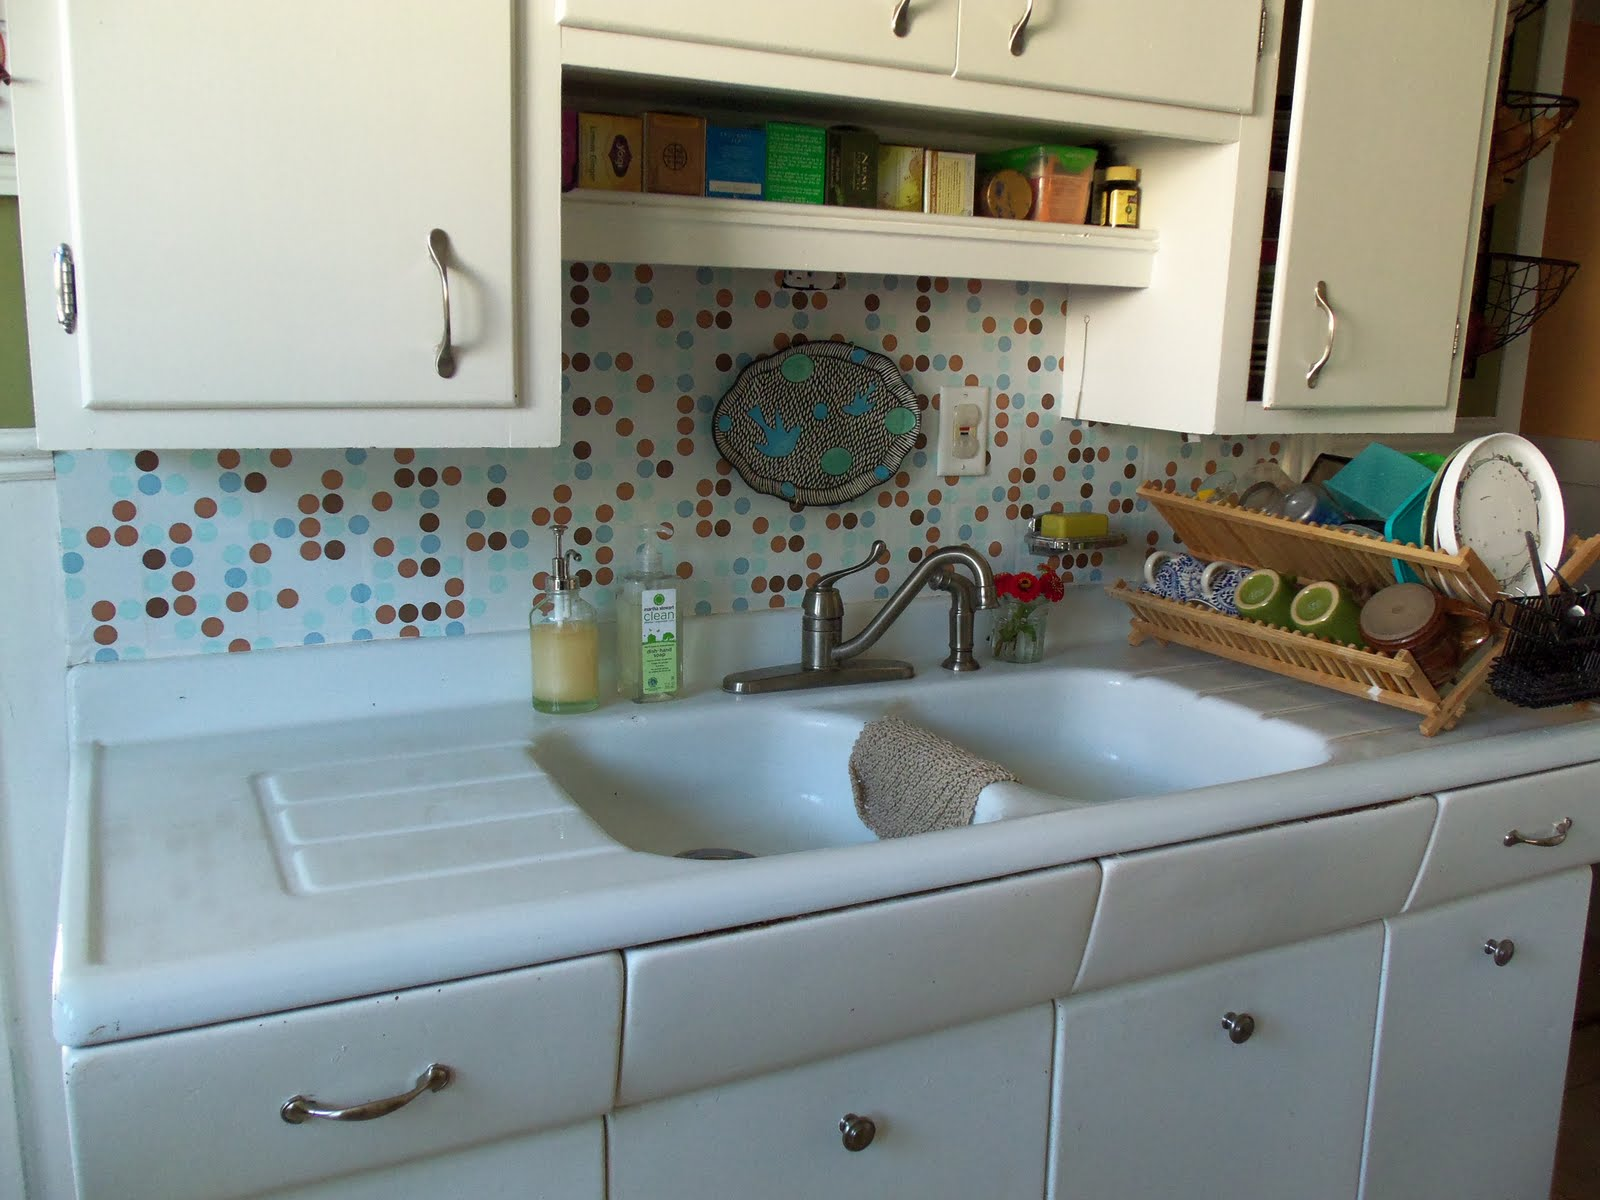 Remodelaholic | Quick and Painless Backsplash Makeover